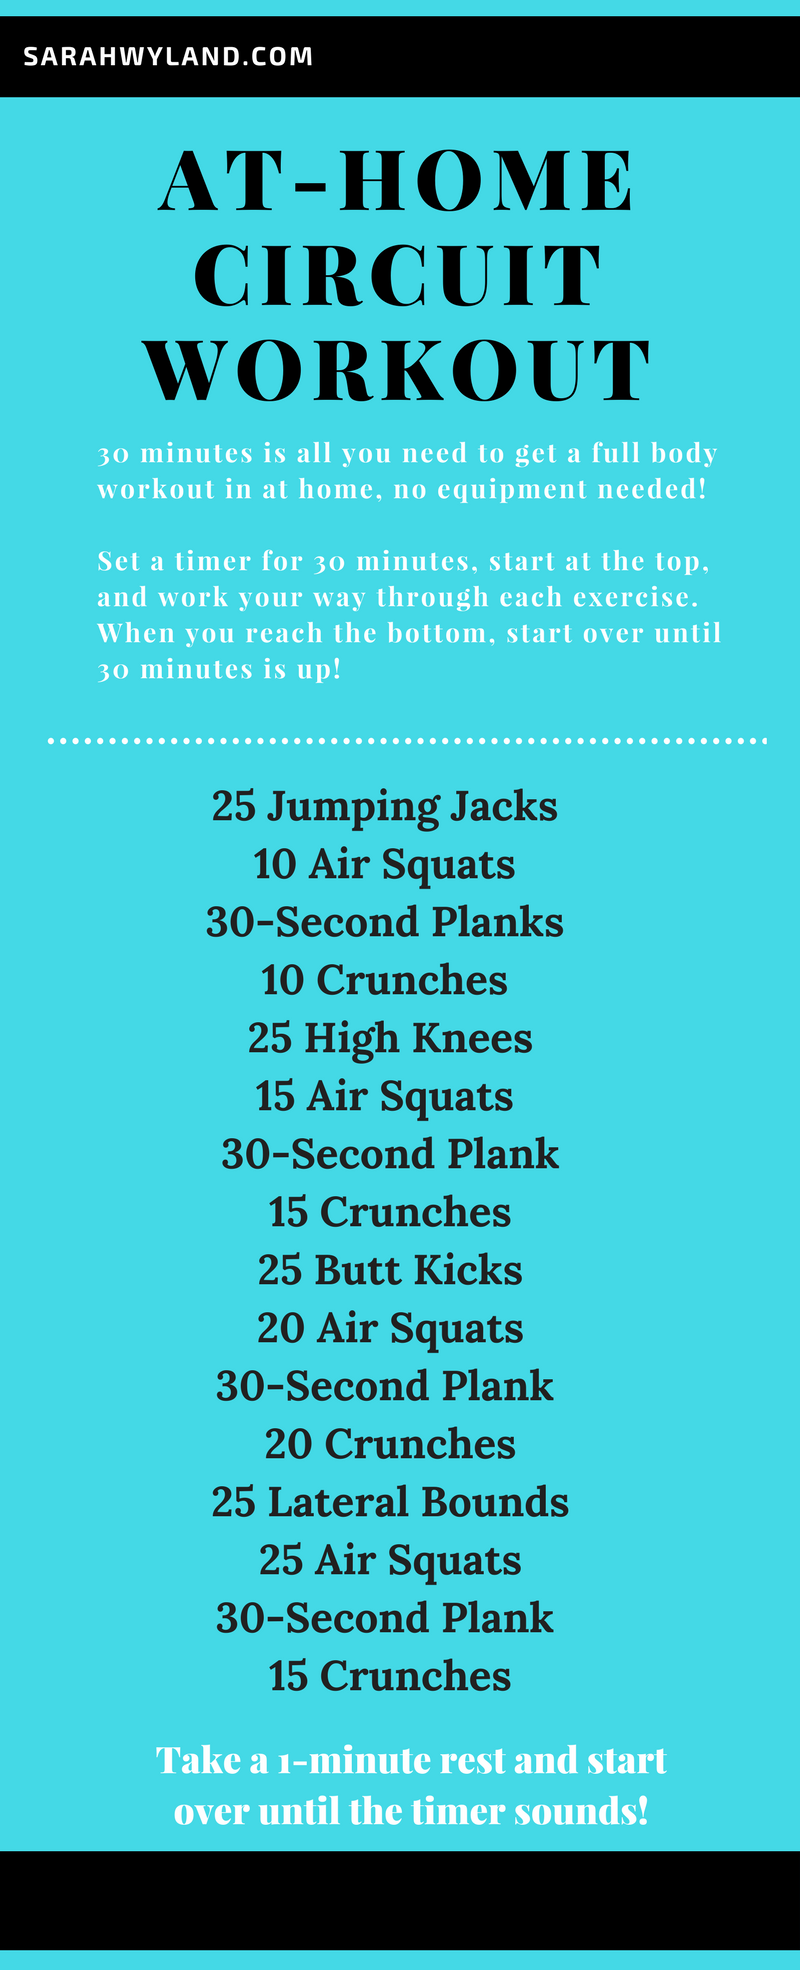 At Home 30 Minute Circuit Workout No Equipment Needed Sarah Wyland Workout Circuit At Home Circuit Workout Hiit Workout At Home